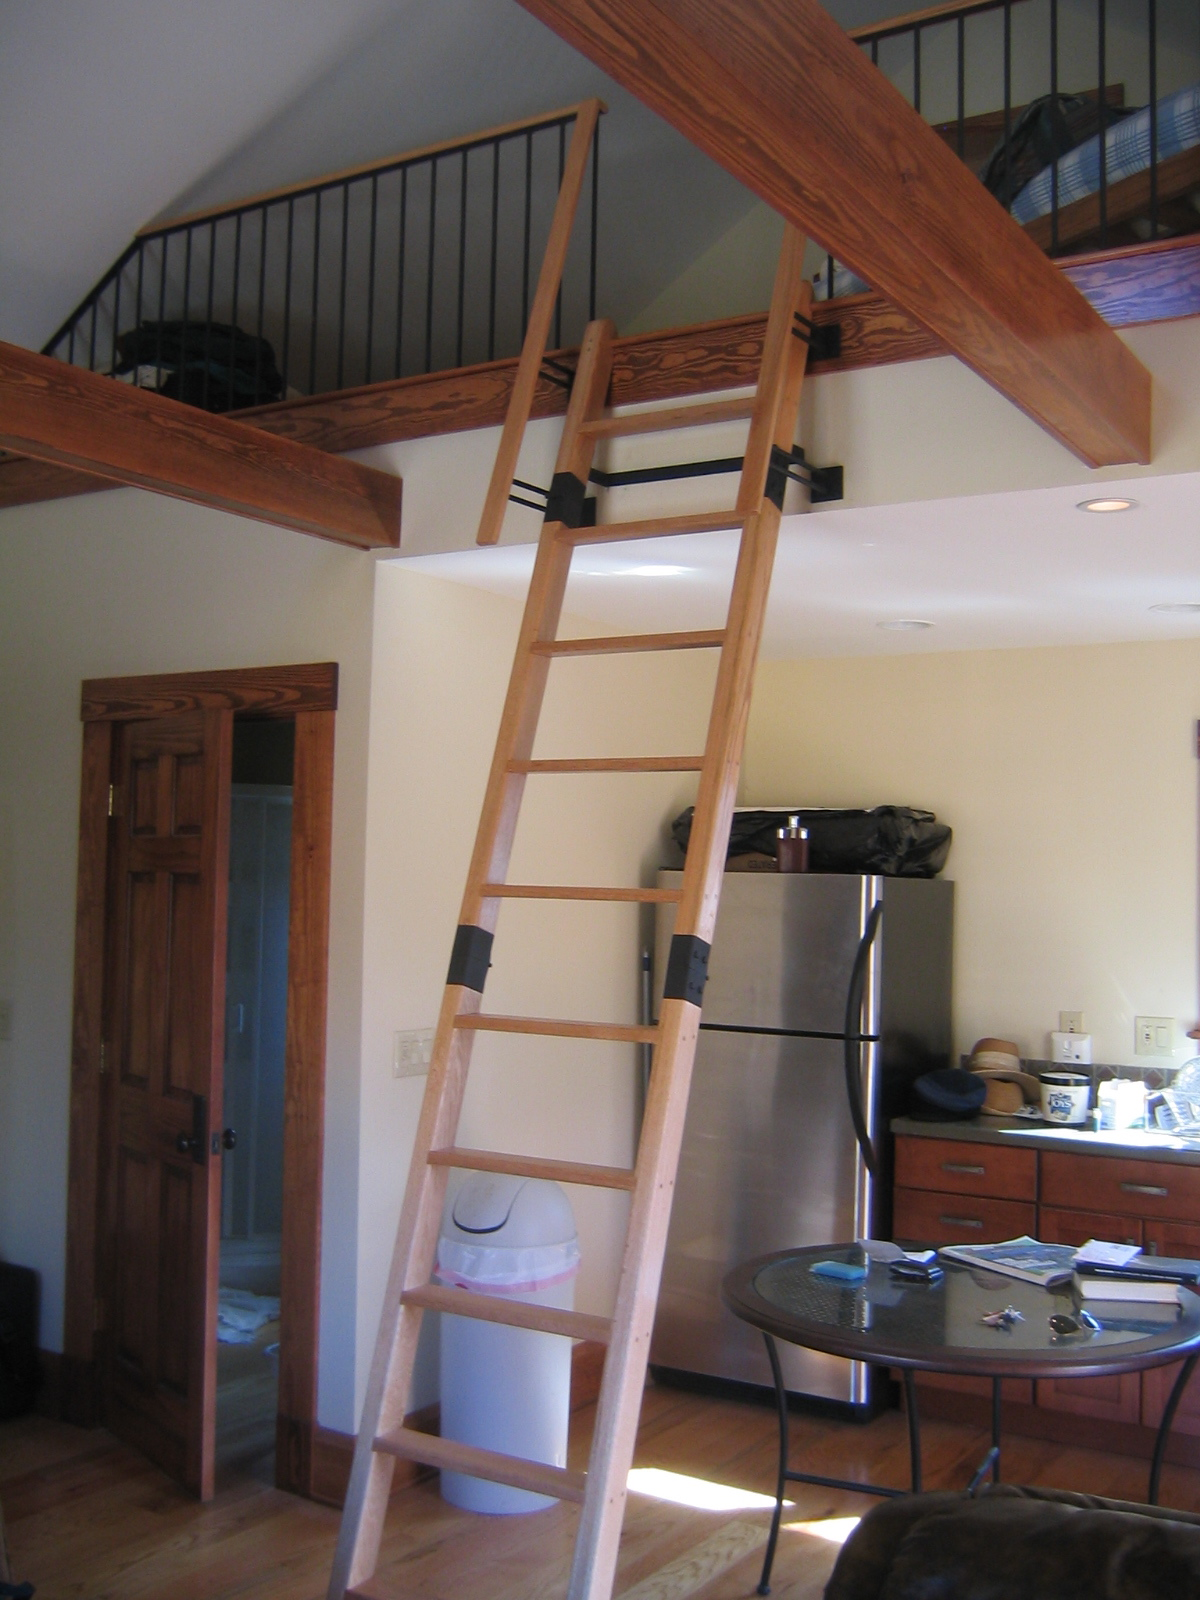 Folding Ladder and Railing. This oak ladder is truly one of a kind. The brackets that hold if flow right into the handrail above.  Breitzke Carpentry  Designed and built every component of this system. Oak and painted steel.